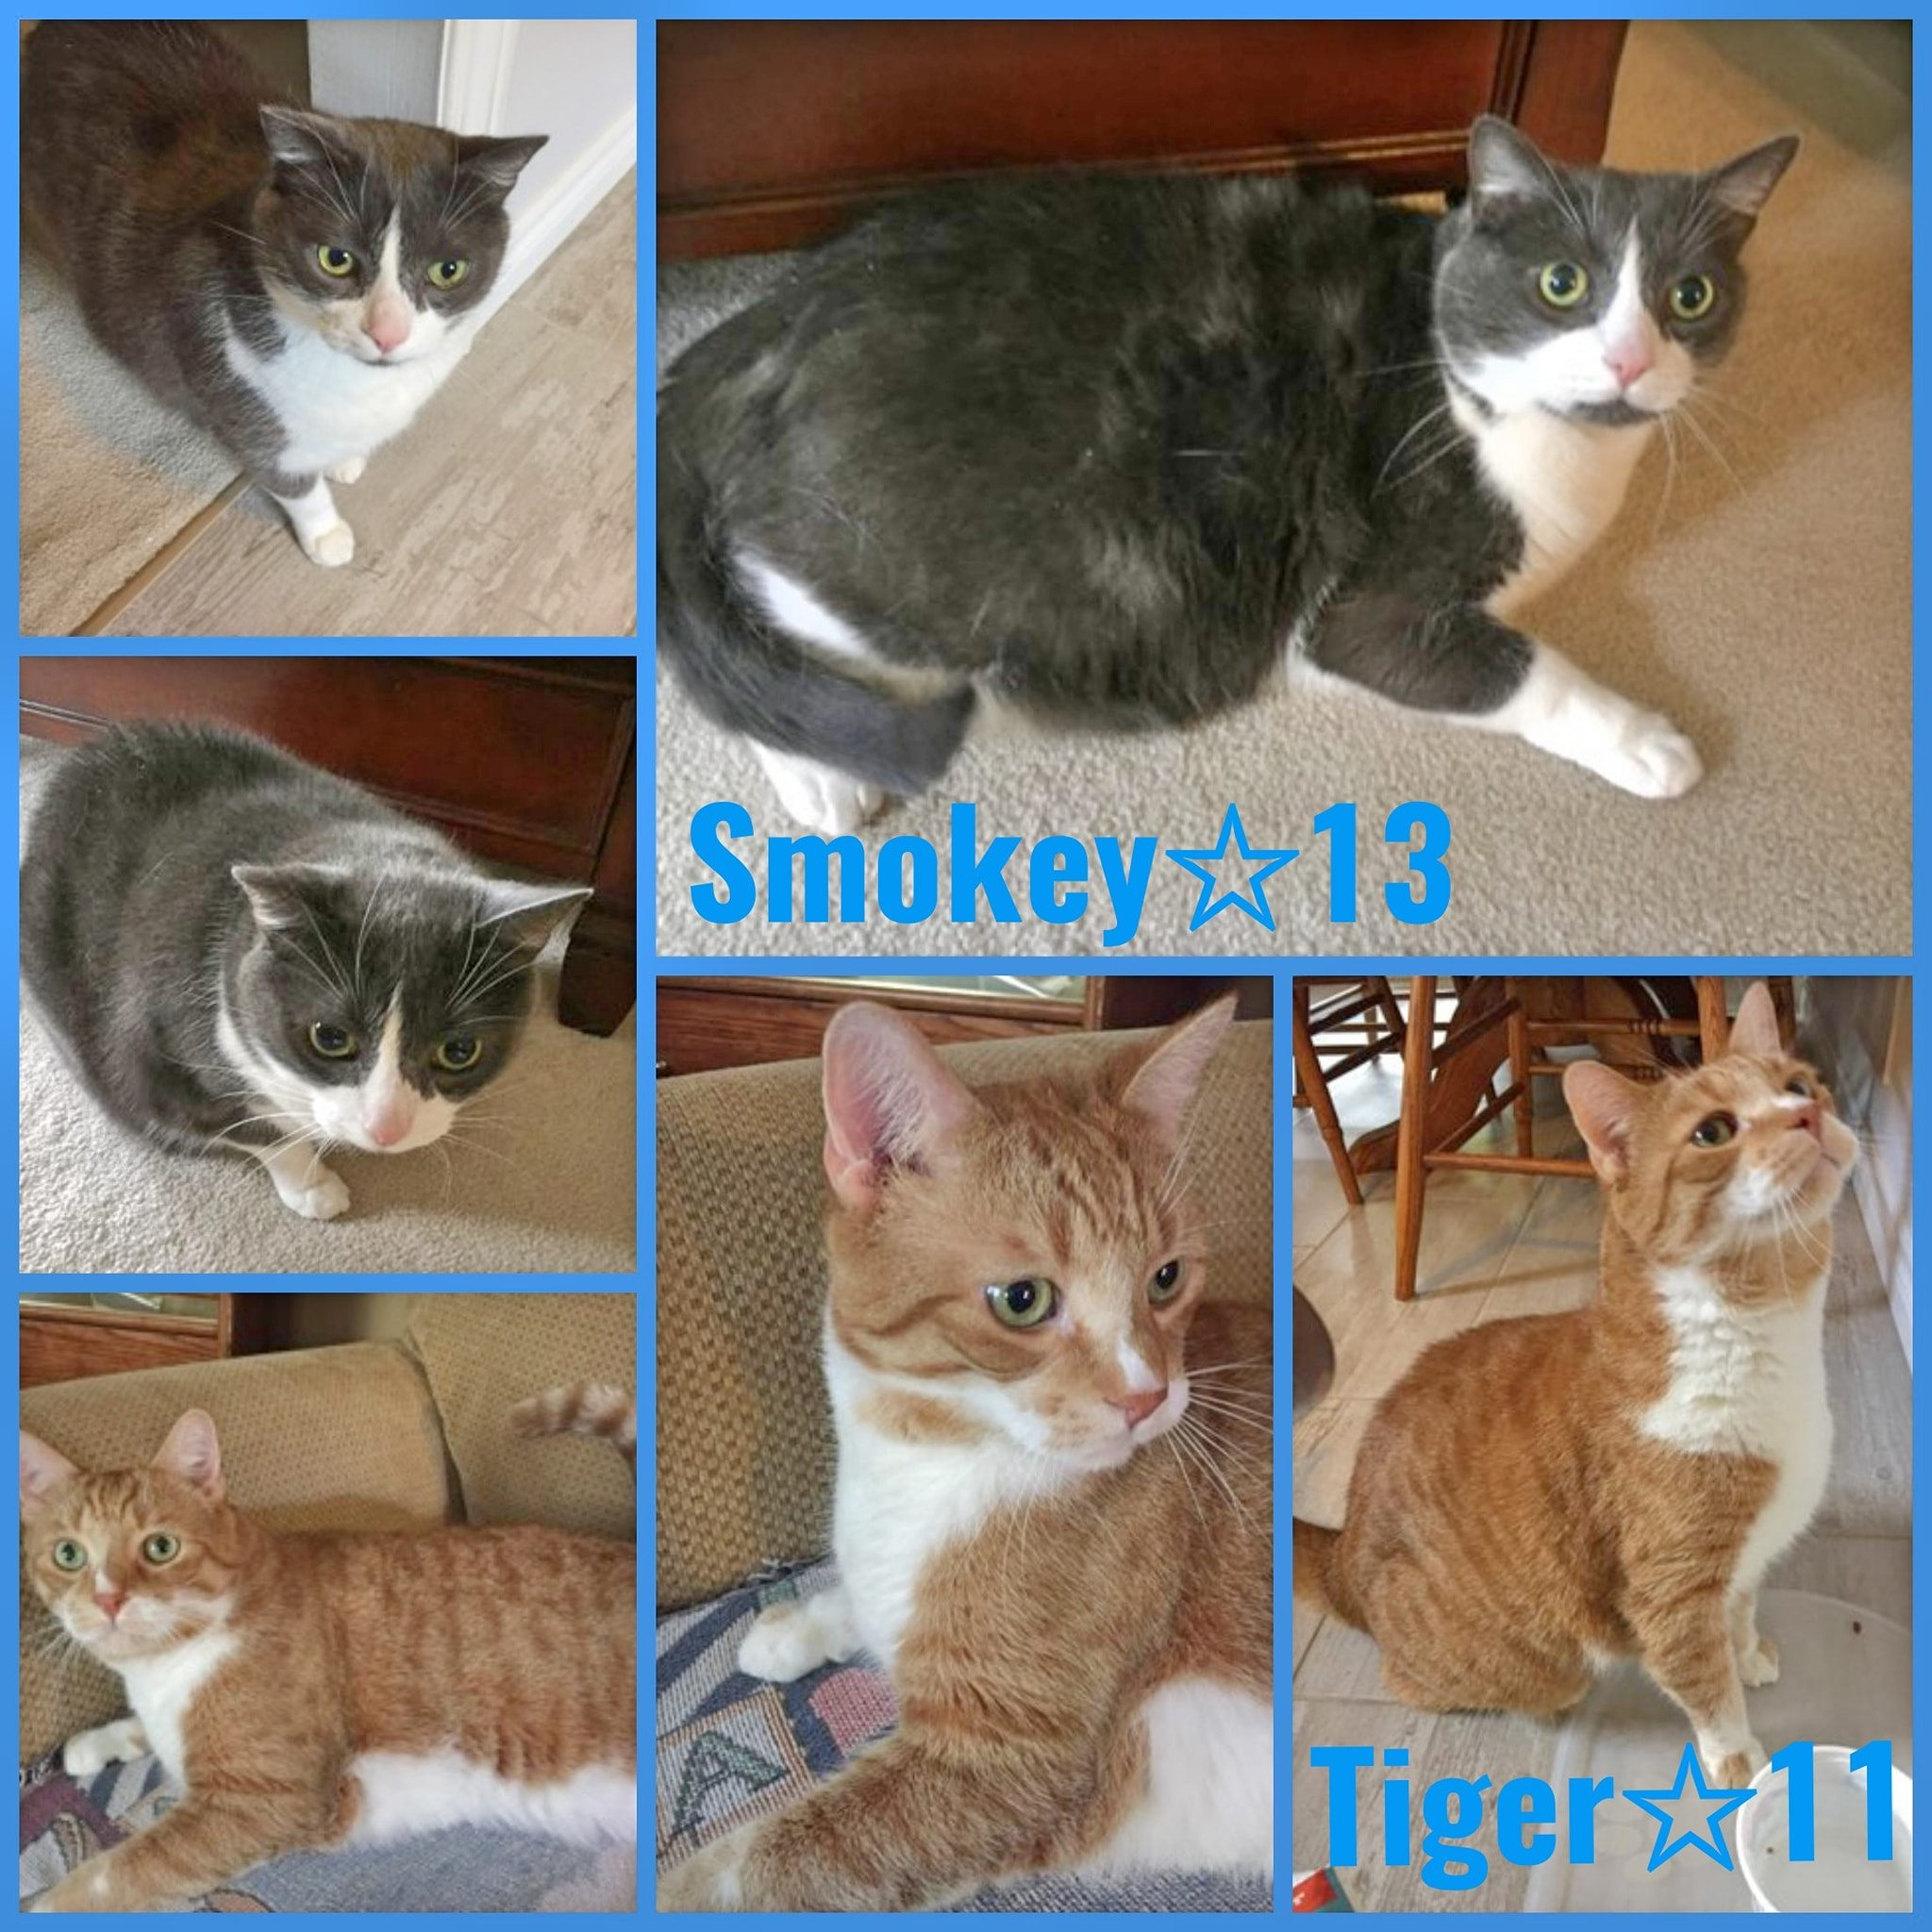 Smokey-Male-13 Years  Tiger-Male-11 Years